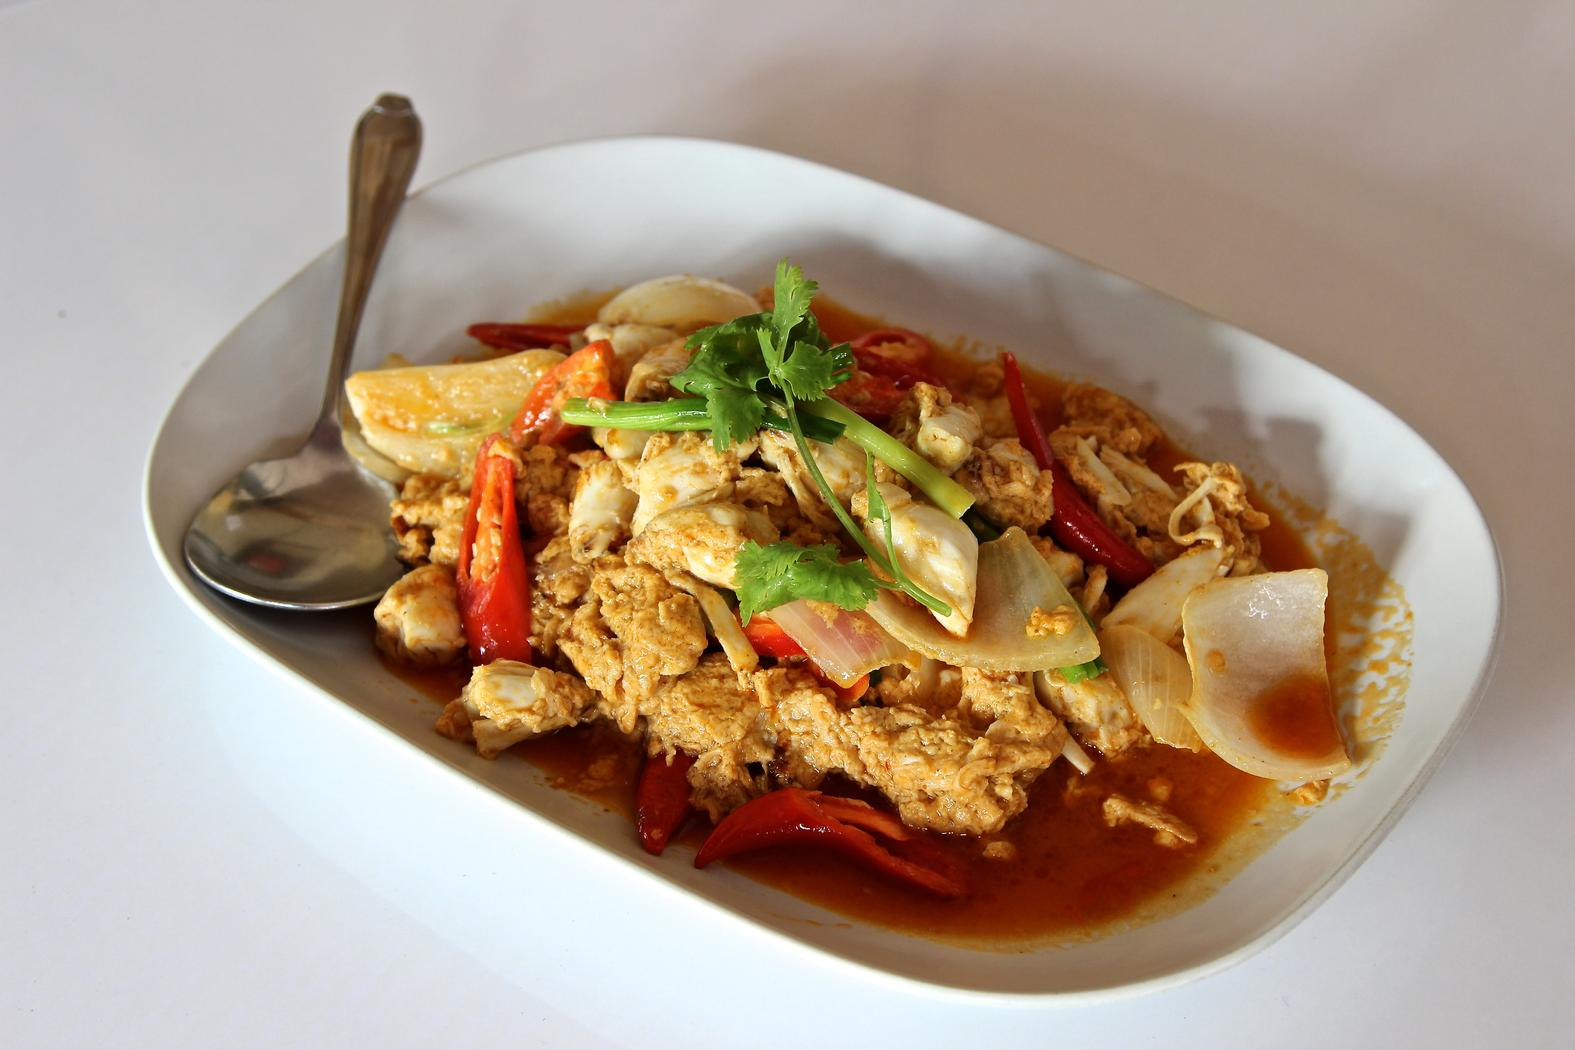 Poo phad phong karee (yellow crab curry).